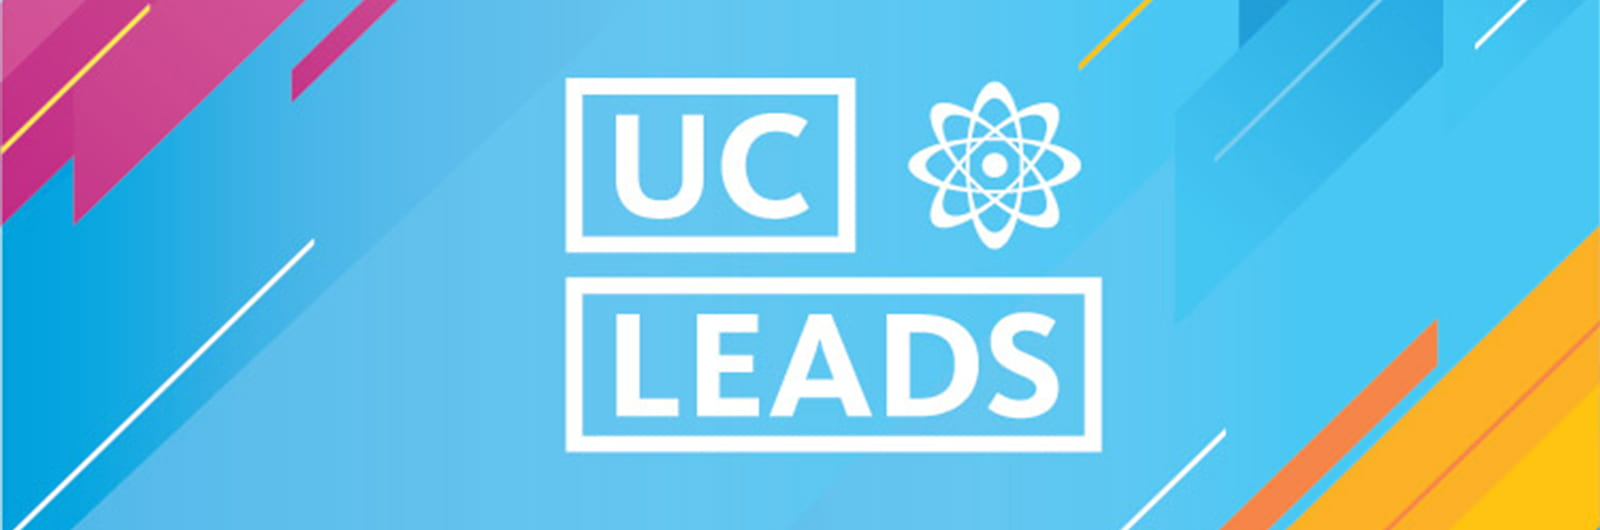 Leadership Excellence through Advanced Degrees (UC Leads)